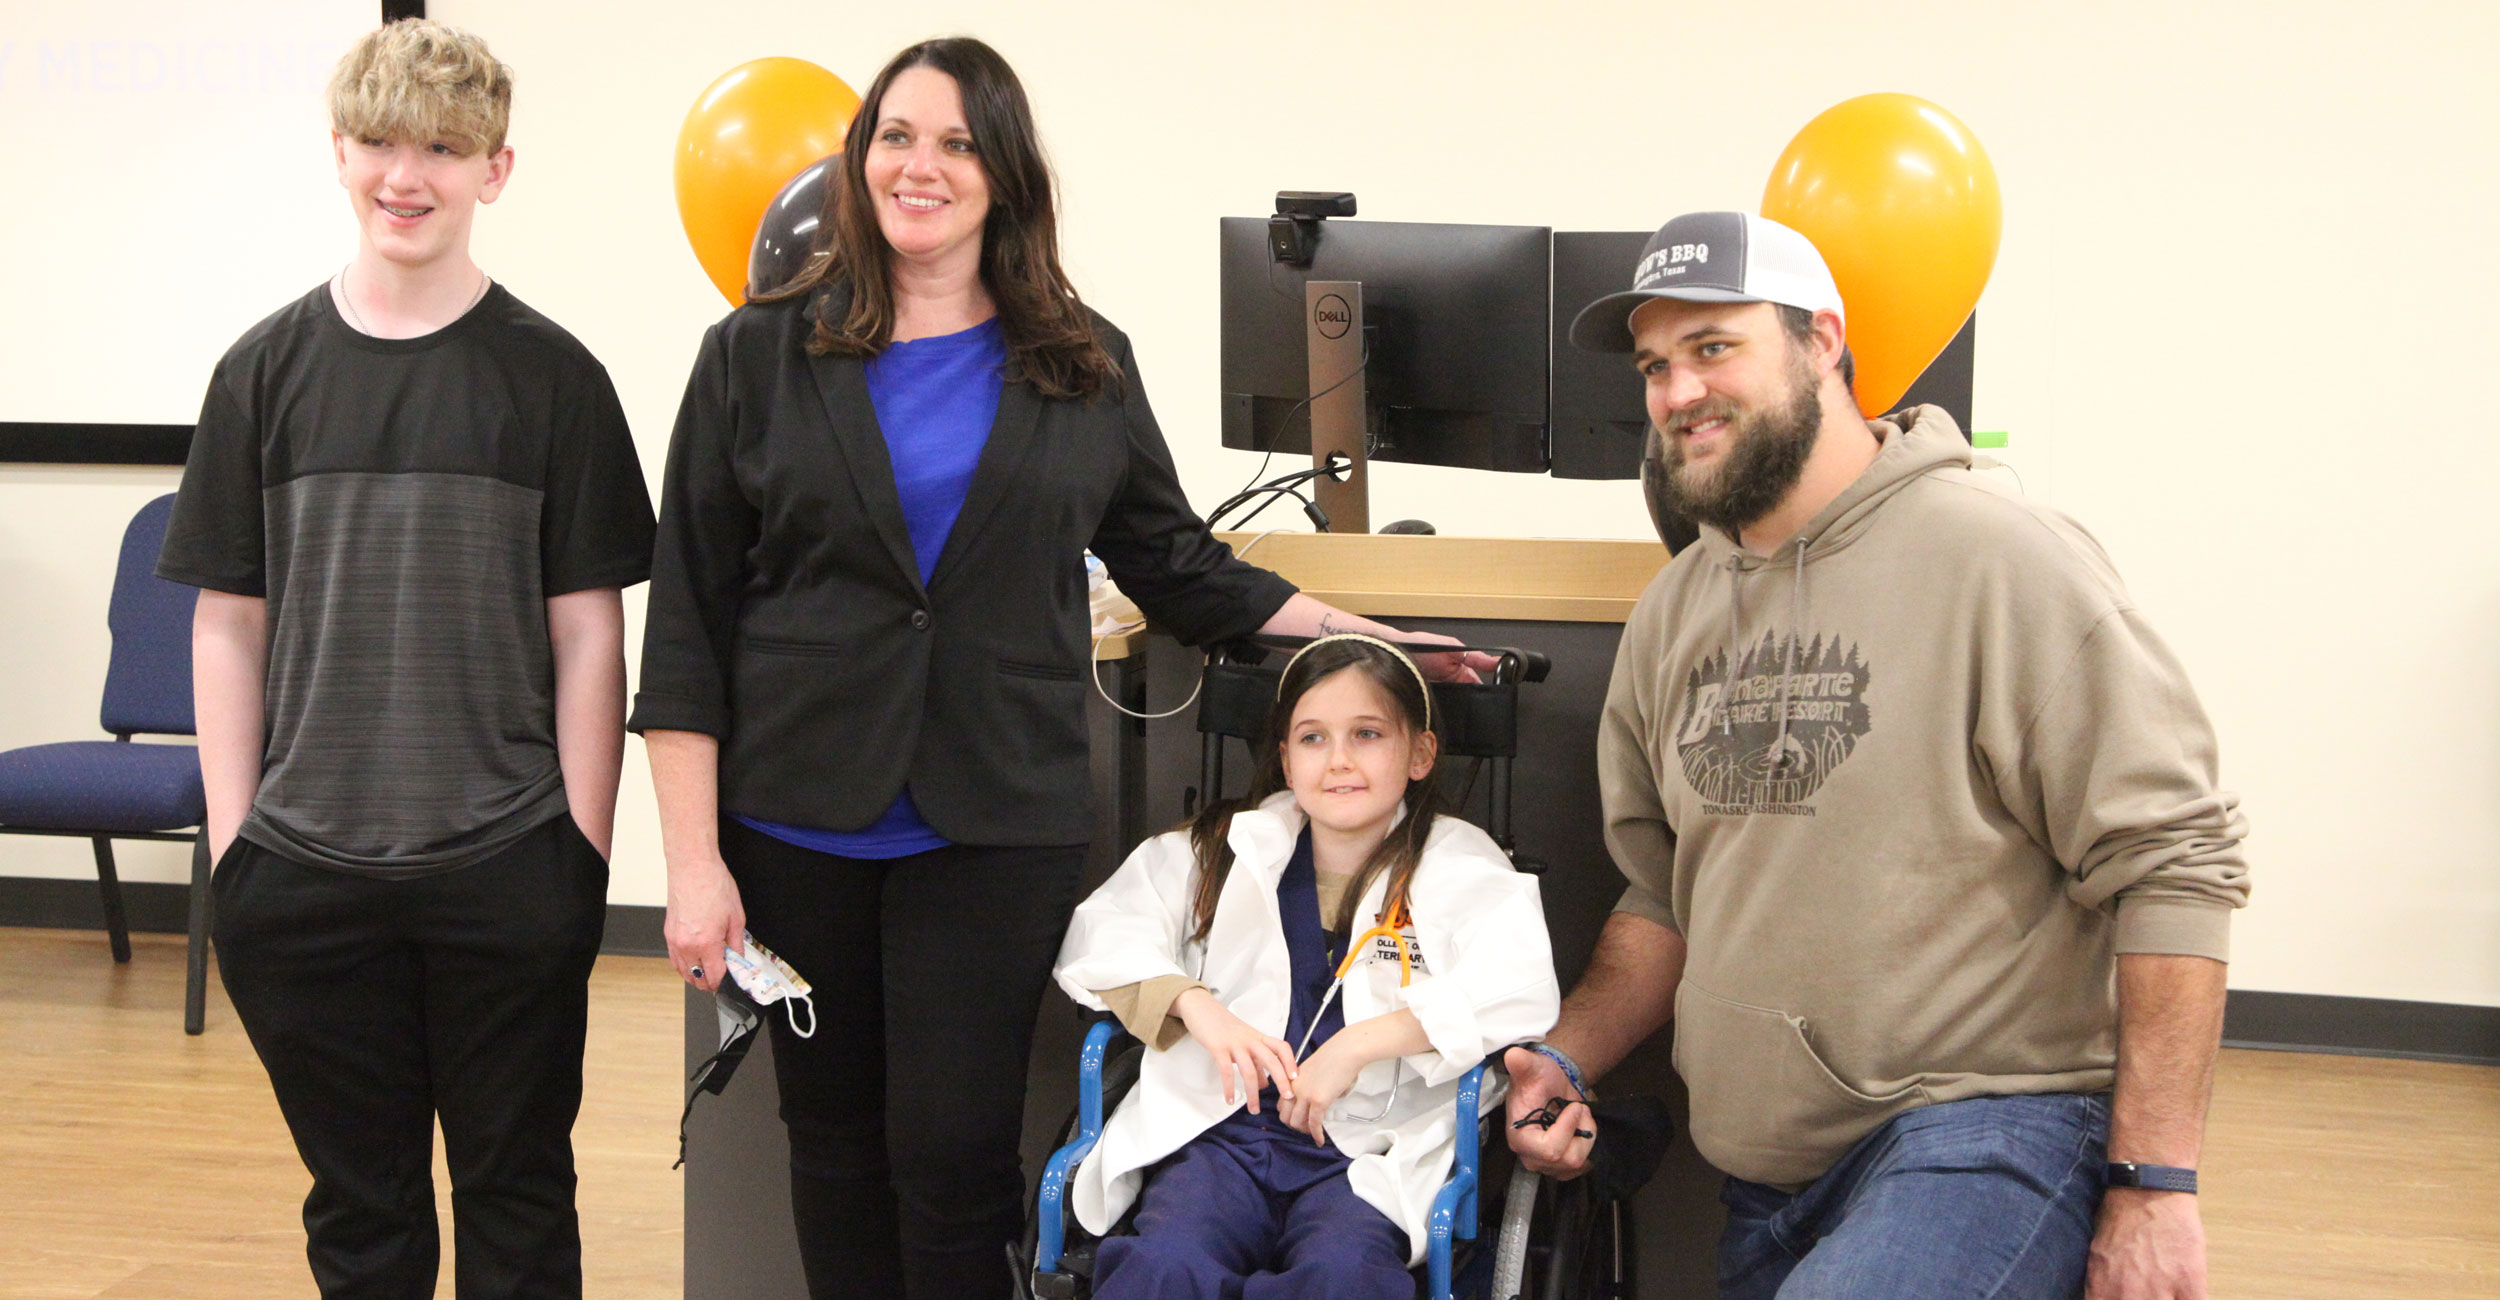 Addie, an 8-year-old cancer patient from Tulsa, visited OSU as part of the Make-A-Wish program. Pictured (left to right): Her brother, Tyler; her mom, Renee; Addie; and her dad, Ben.